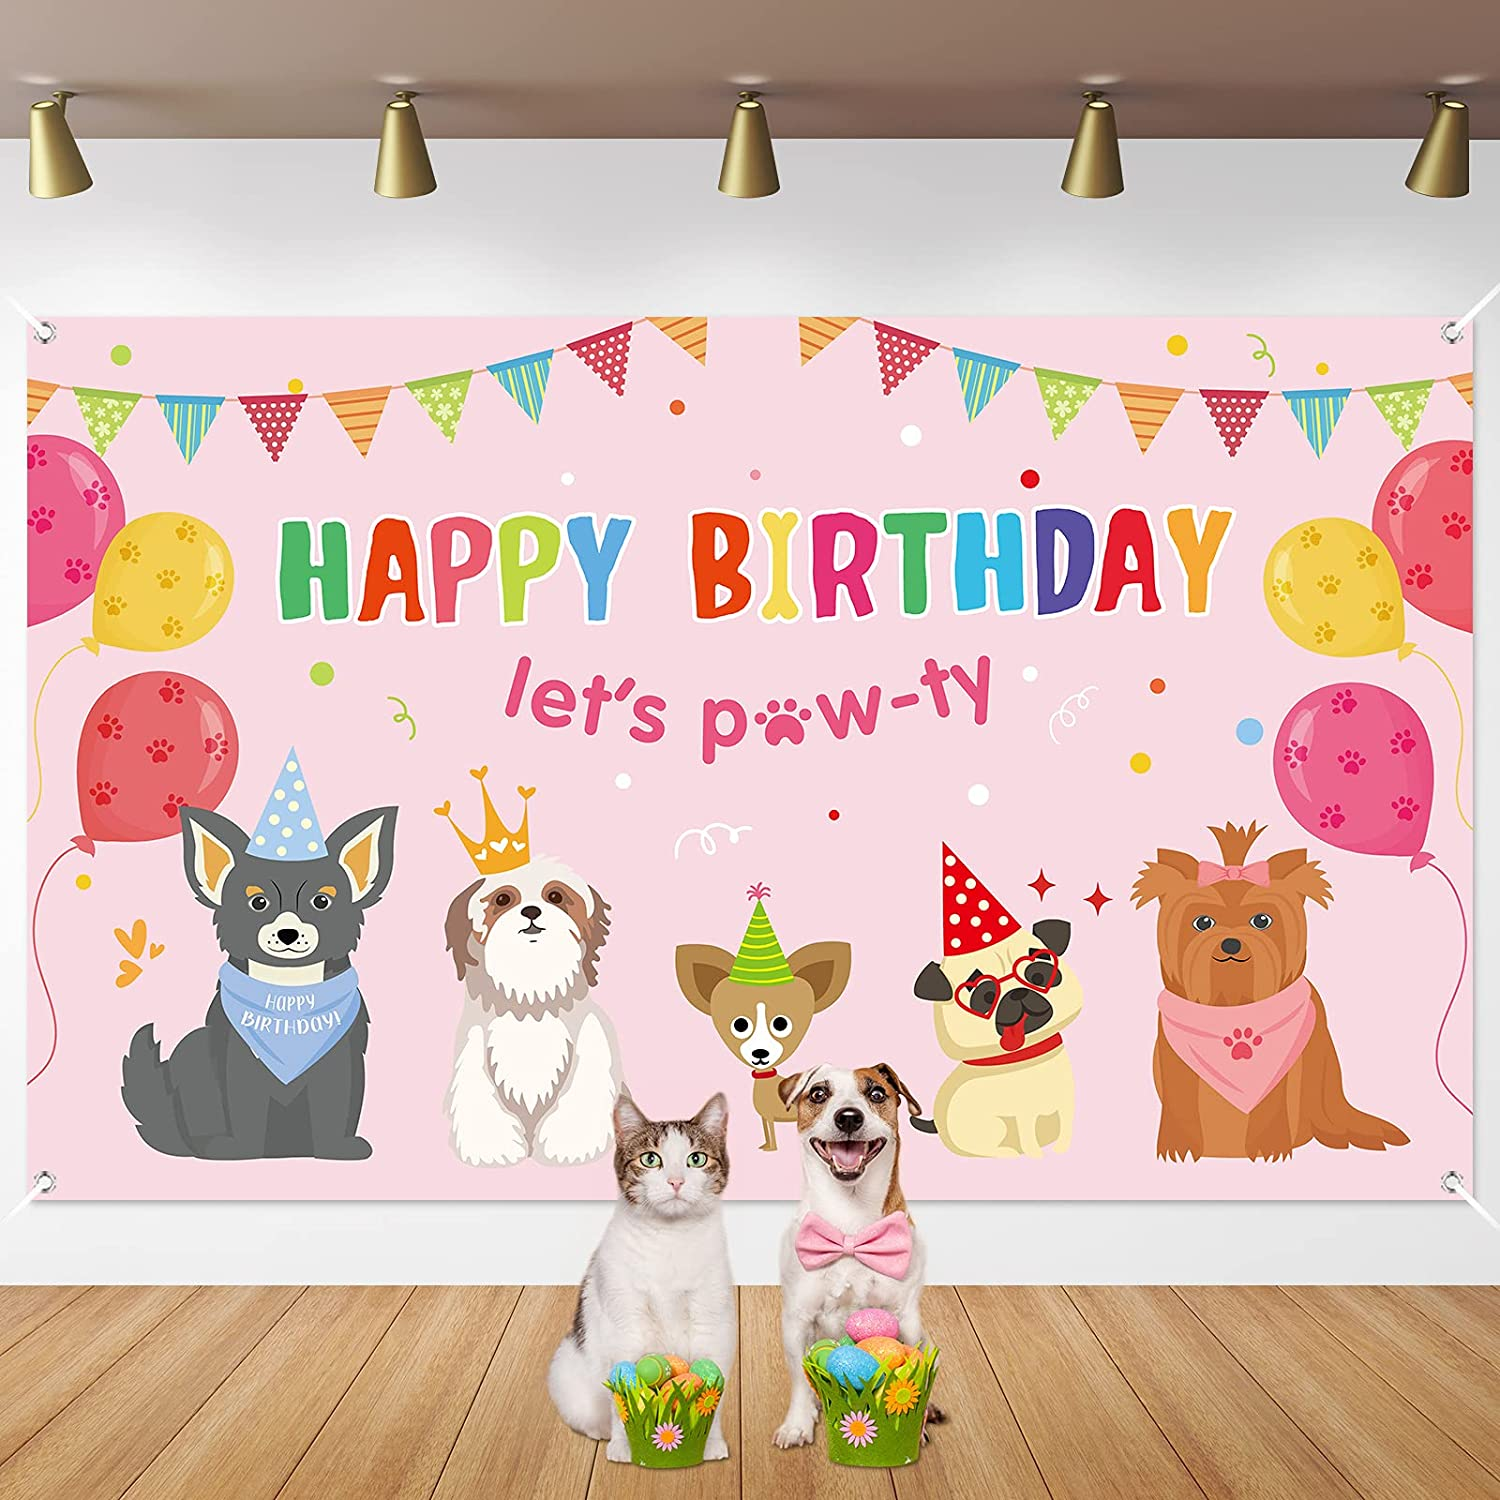 Dog latest Girl Party Decorations Puppy Cheap mail order specialty store Pink Birthday Themed